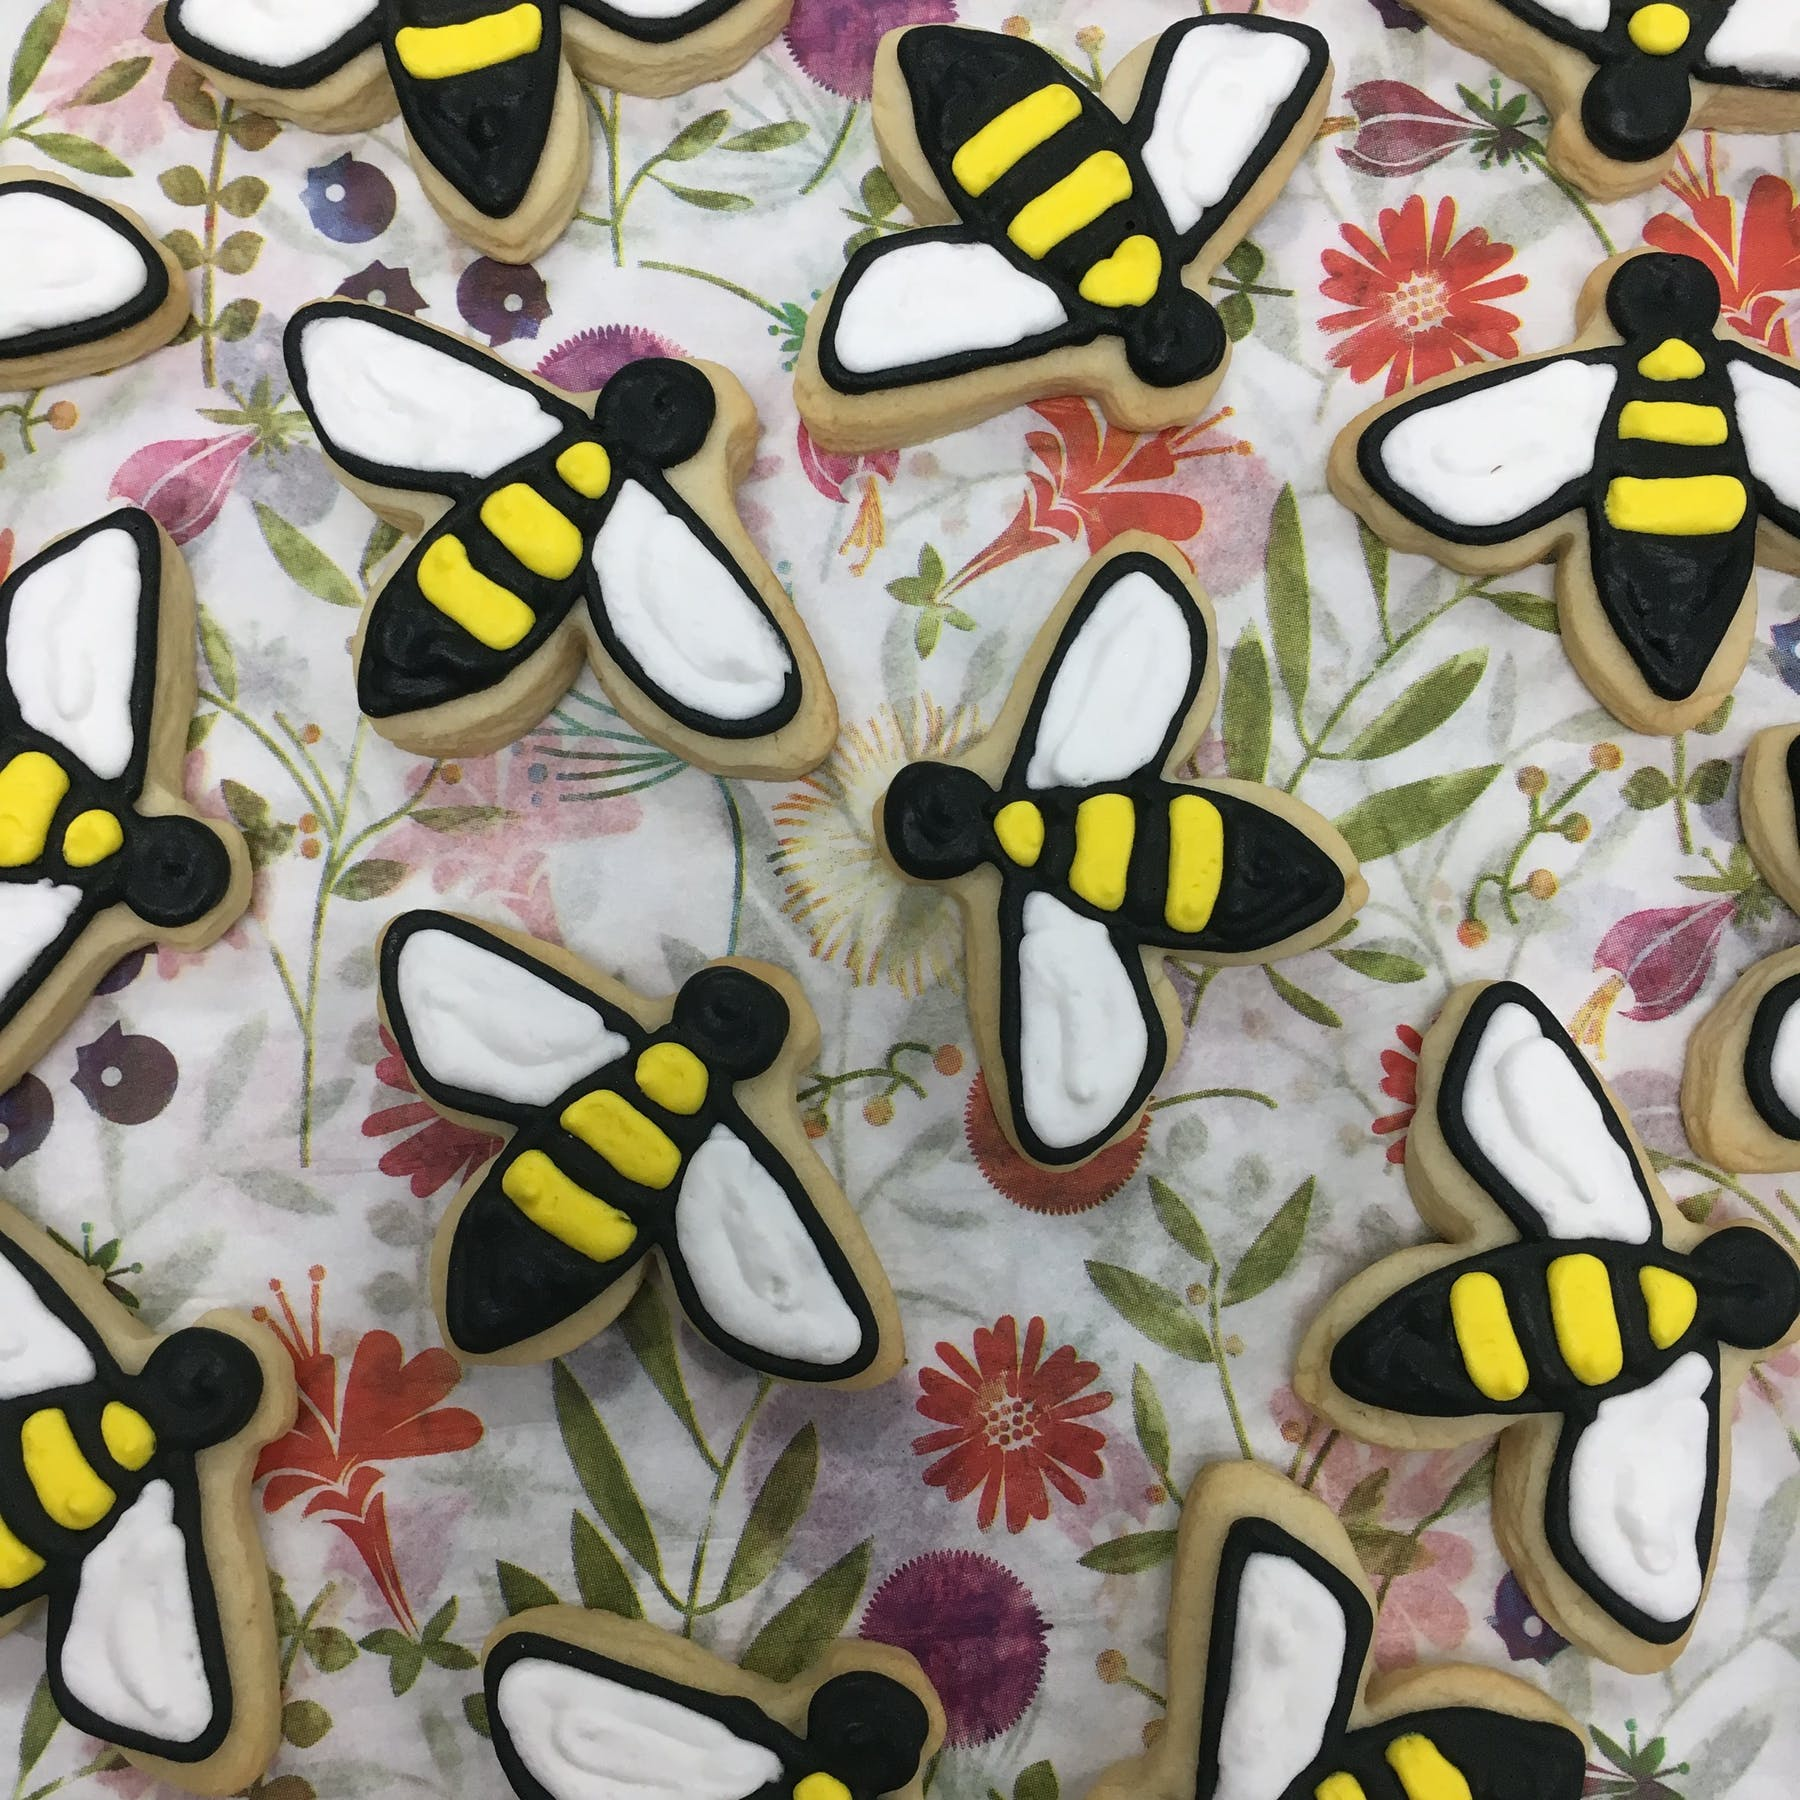 bees on top of floral paper